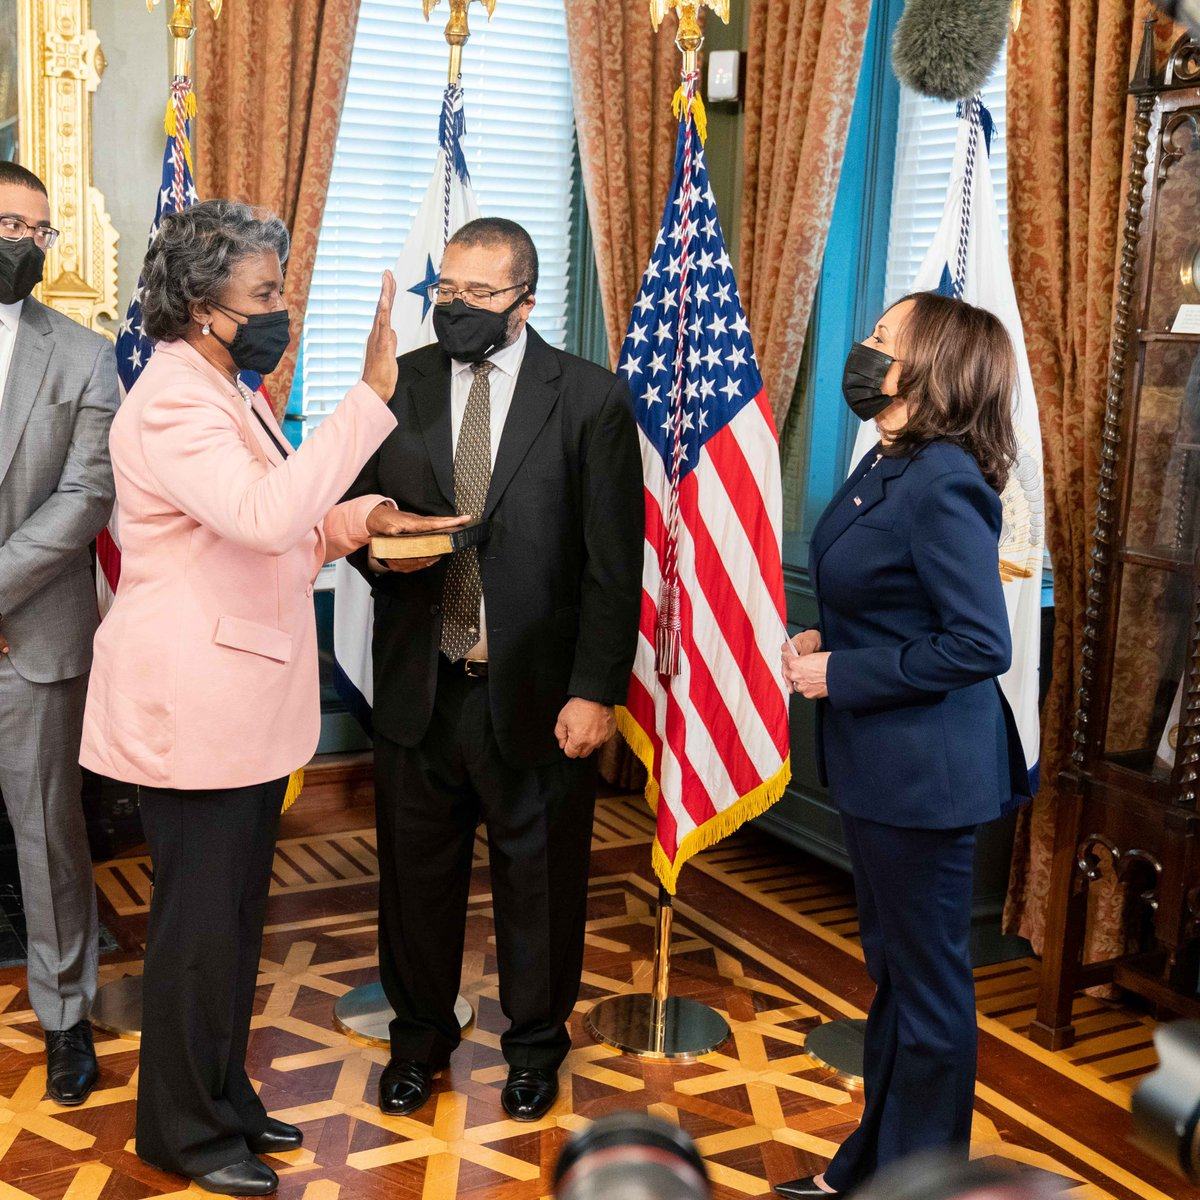 Today I swore in Linda Thomas-Greenfield as the U.S. Ambassador to the United Nations. An esteemed foreign service officer with decades of experience, she will be a champion for U.S. diplomacy at the UN and around the world. Congratulations @USAmbUN on this historic moment.